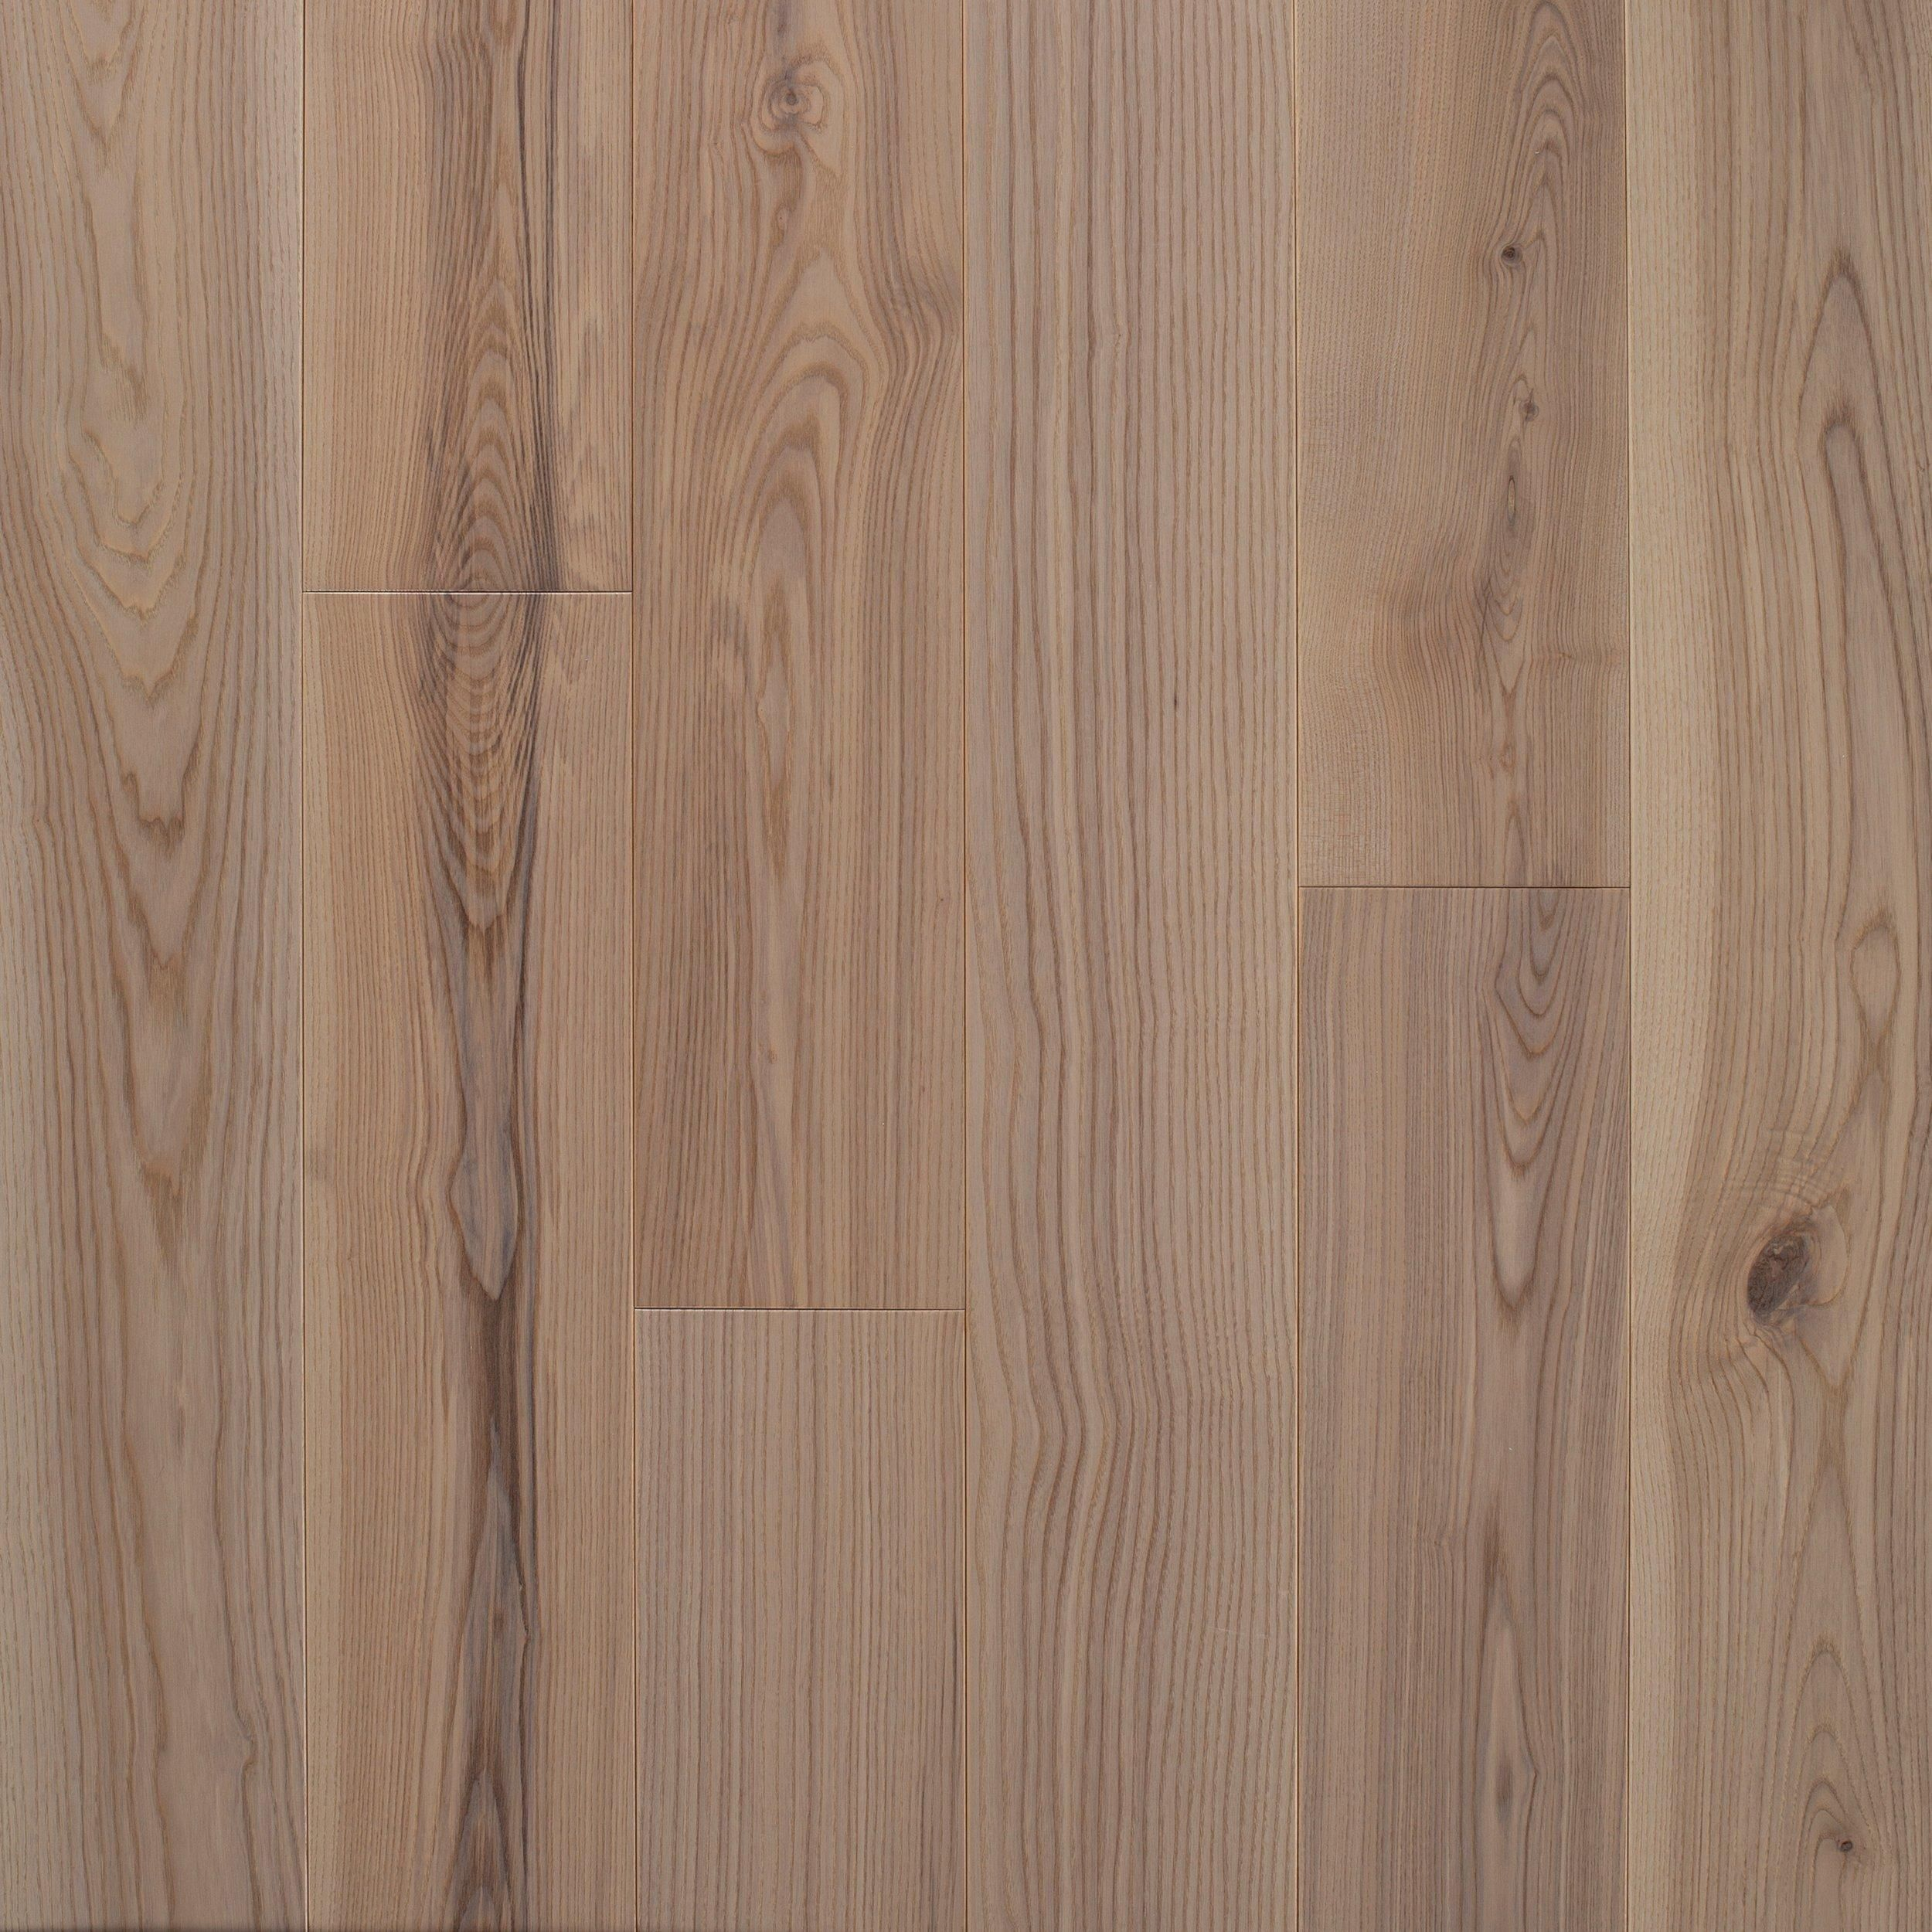 Petersburg Ash Wire Brushed Solid Hardwood In 2020 Solid Hardwood Hardwood Solid Hardwood Floors